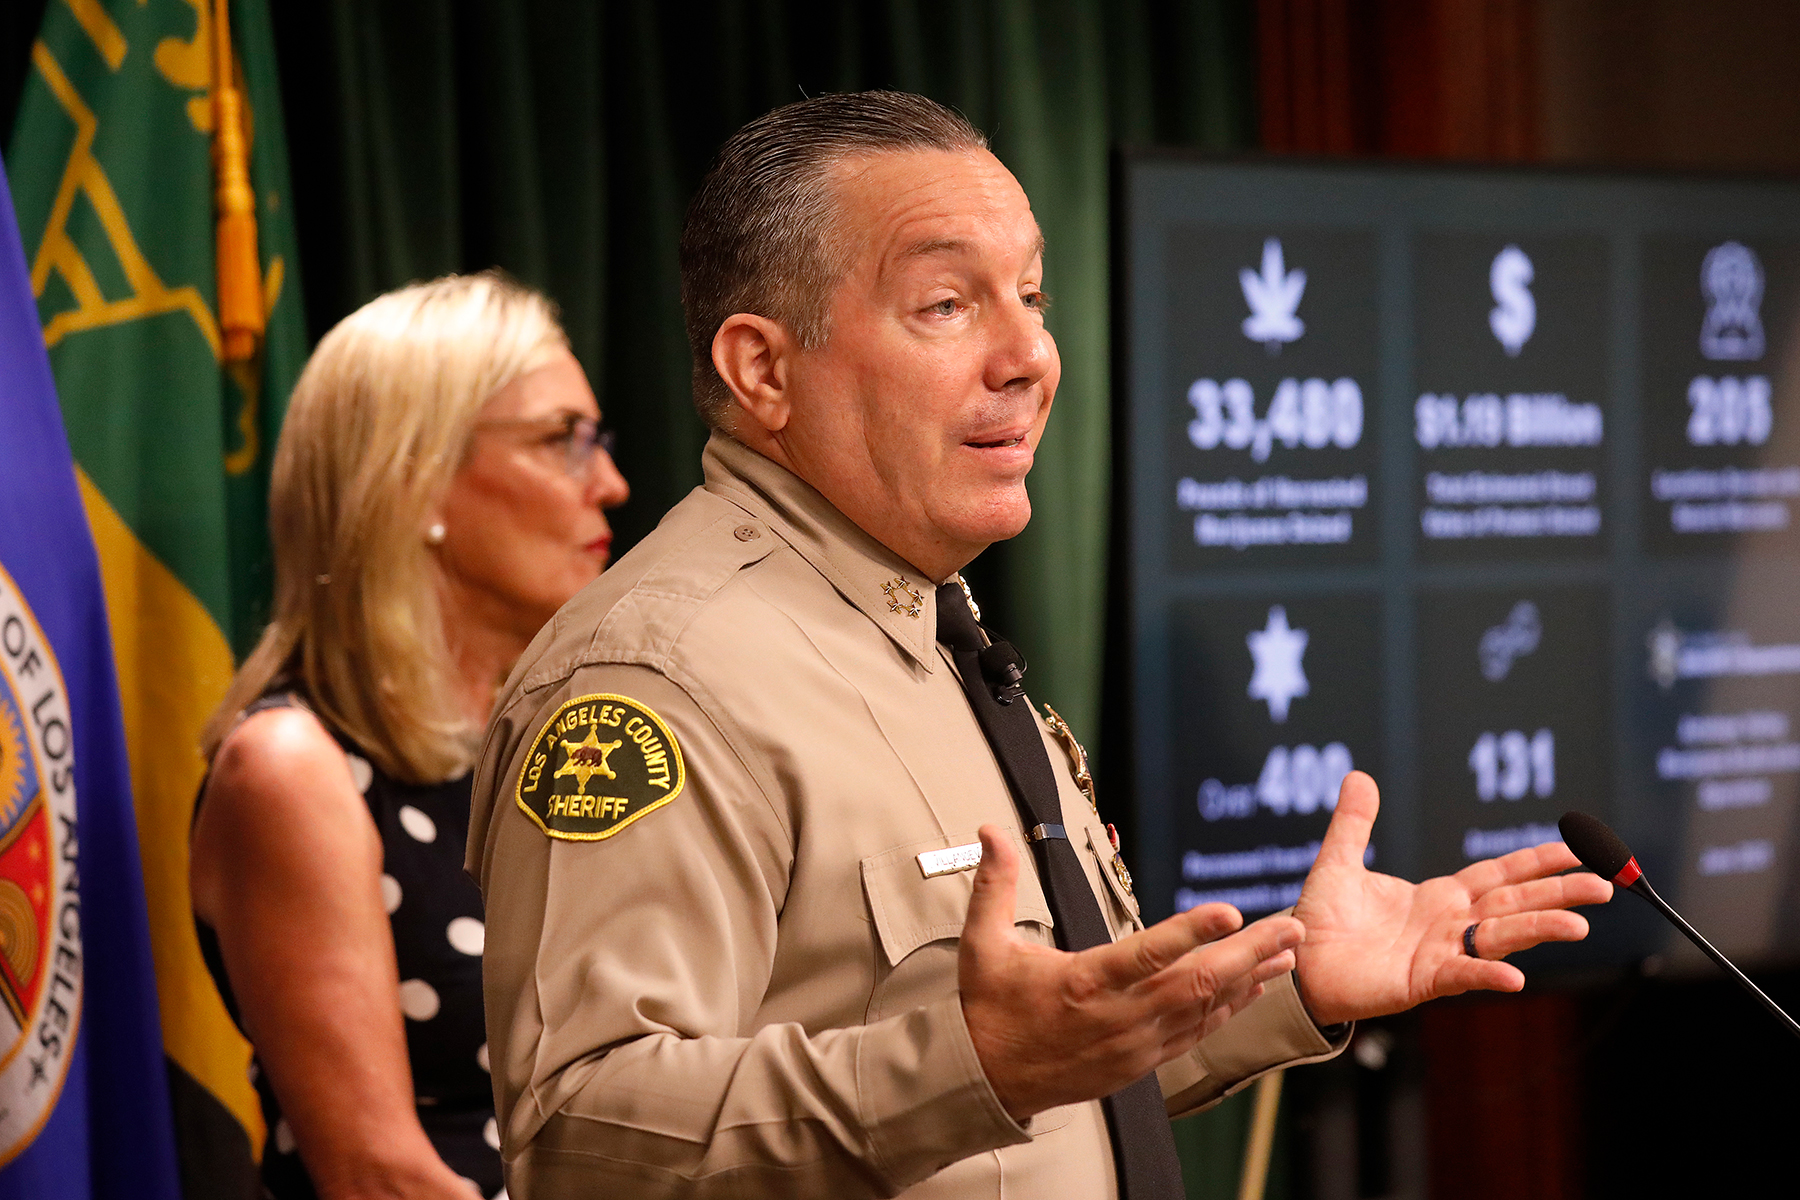 His Deputies Got Caught Forming Gangs, But L.A.'s Sheriff Is Too 'Busy' to Talk About It